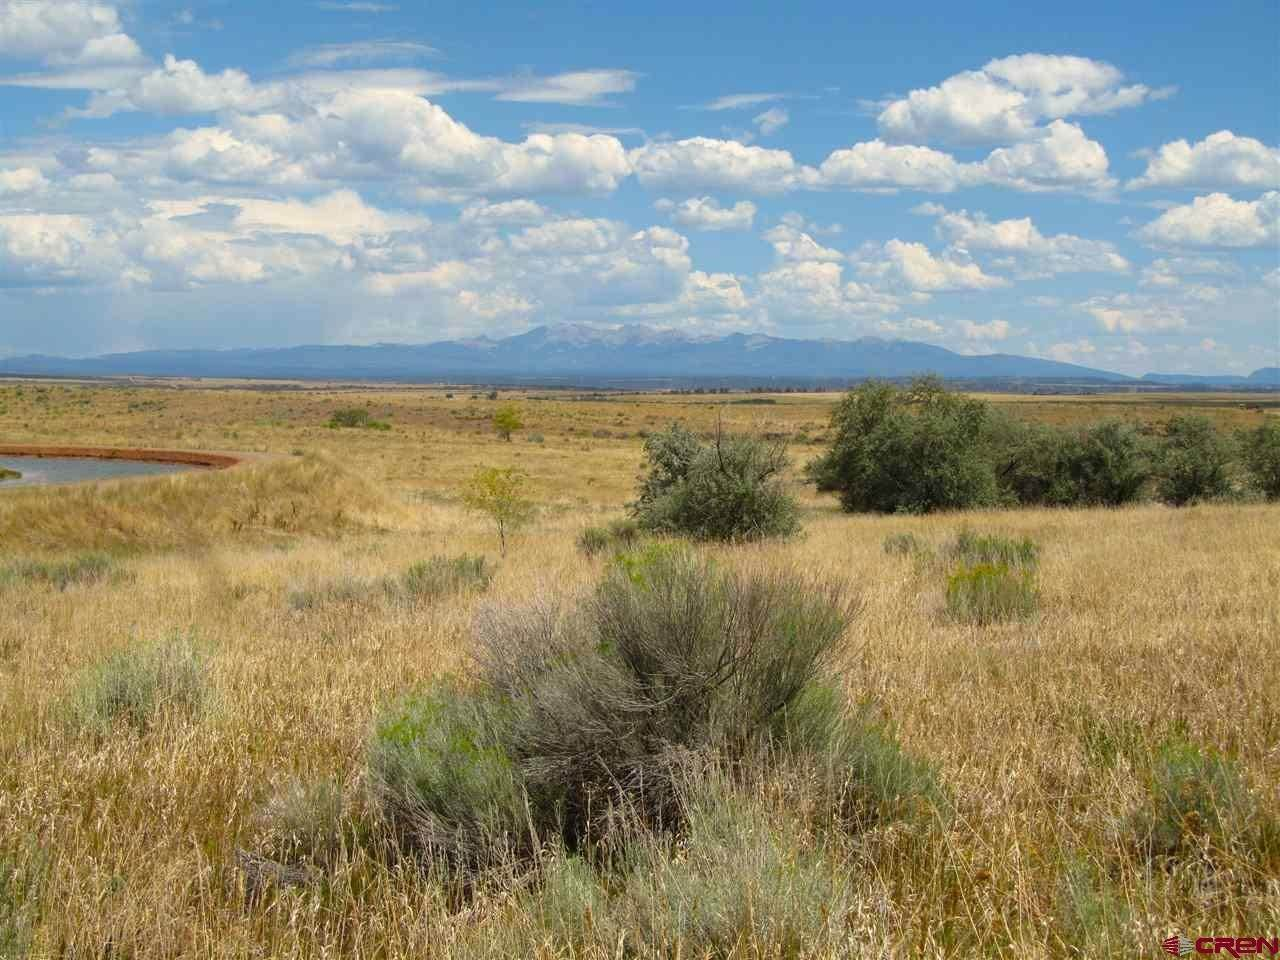 Agricultural Land for Sale at TBD Hwy 491 Yellow Jacket, Colorado 81335 United States